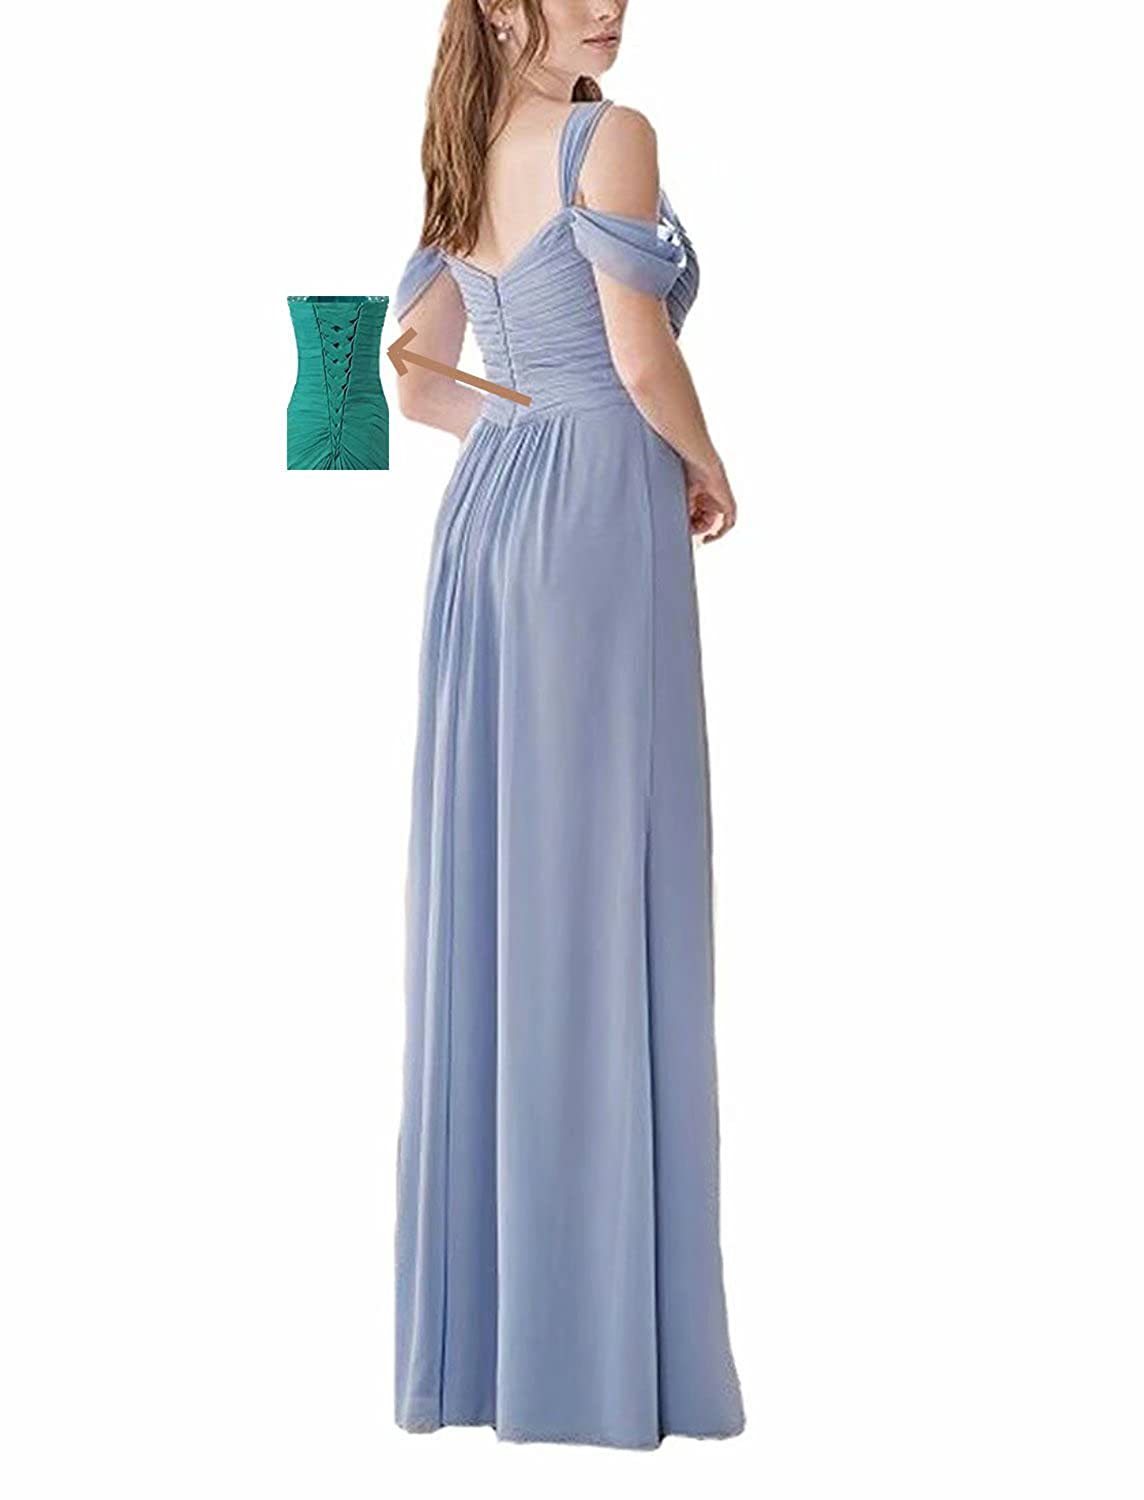 e629918874f TTdamai Women s Off Shoulder Bridesmaid Dresses Long Chiffon Side Slit Wedding  Party Prom Gowns at Amazon Women s Clothing store